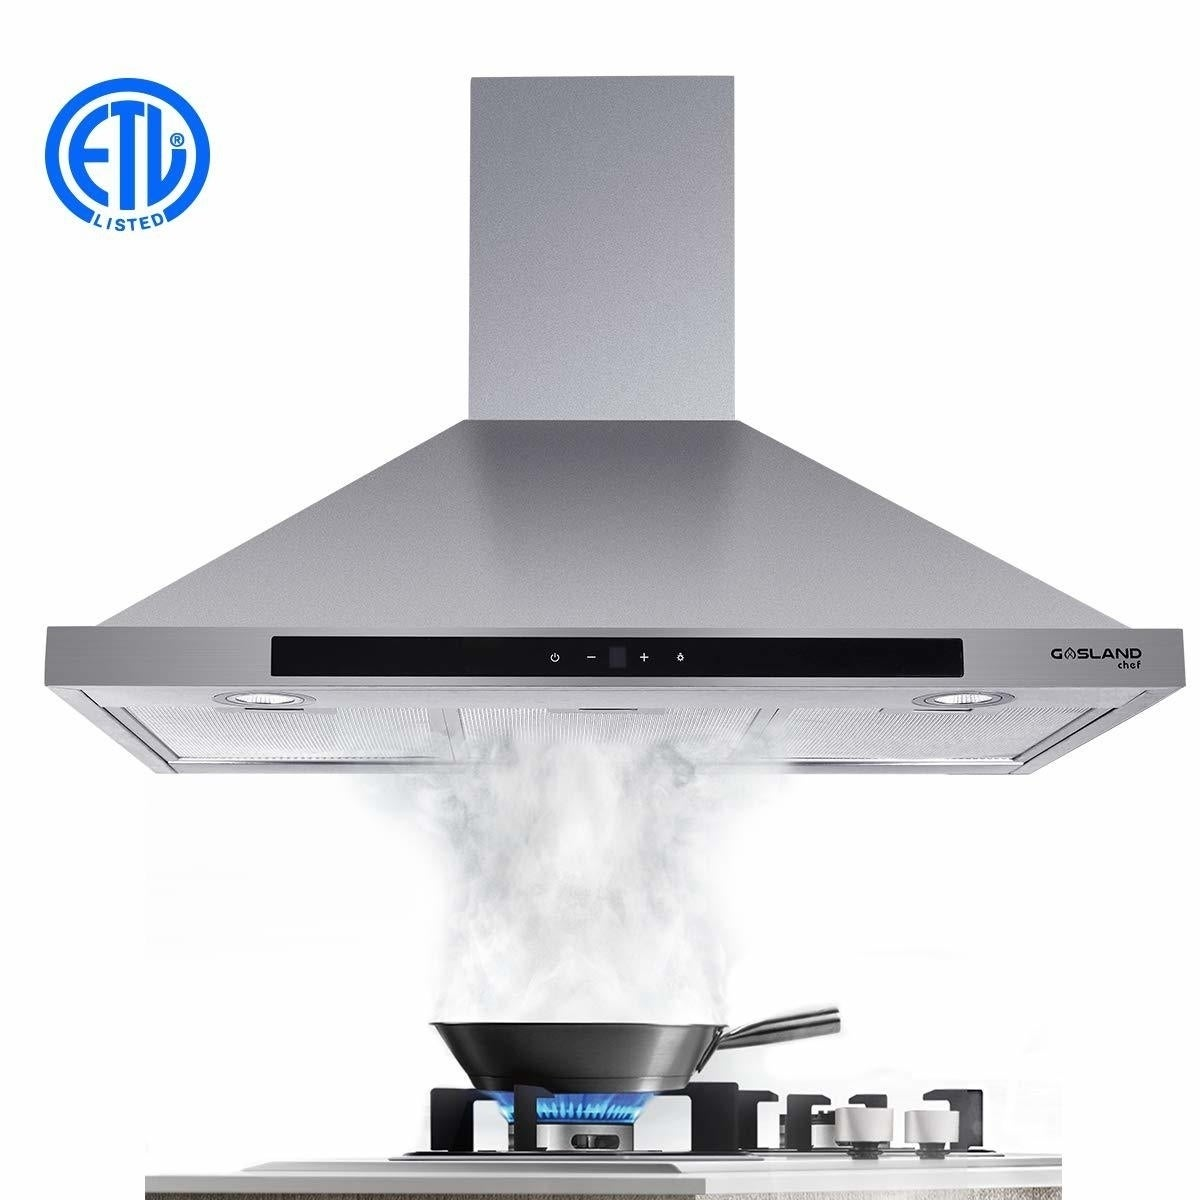 Winflo 30 Wall Mount Stainless Steel Convertible Range Hood with 450 CFM Air Flow Aluminium Mesh Filters and LED Lights